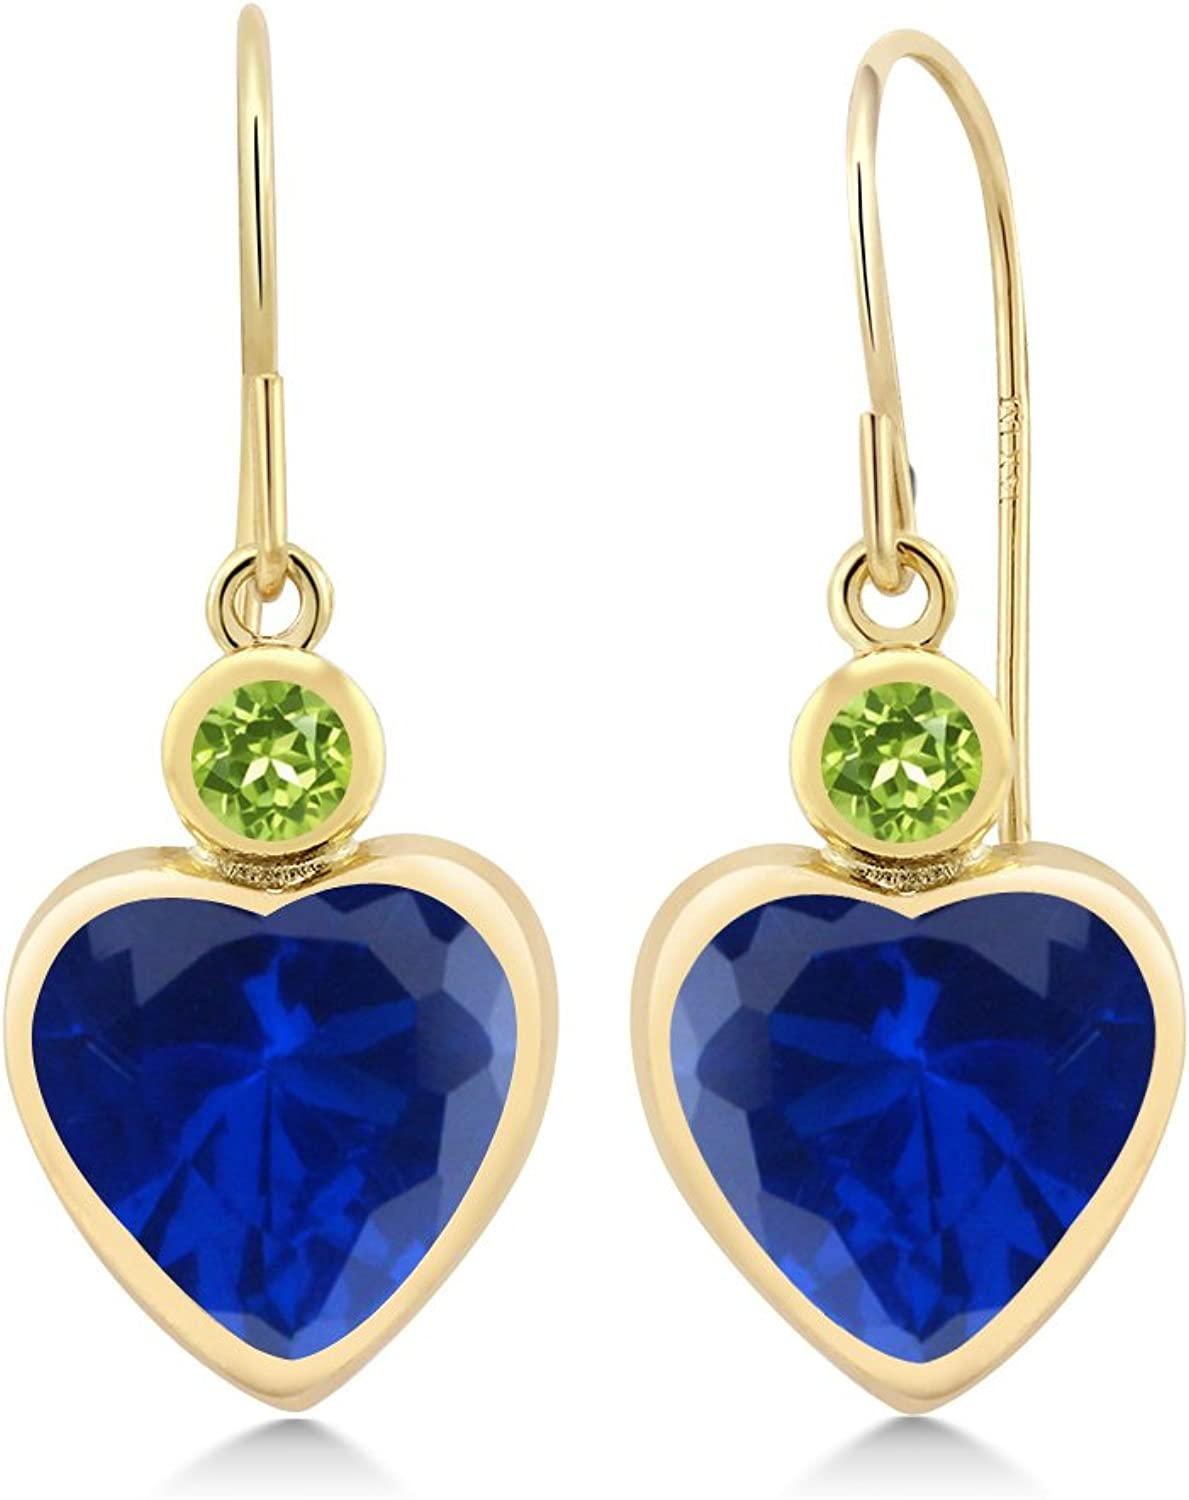 4.84 Ct Heart Shape bluee Simulated Sapphire Green Peridot 14K Yellow gold Earrings